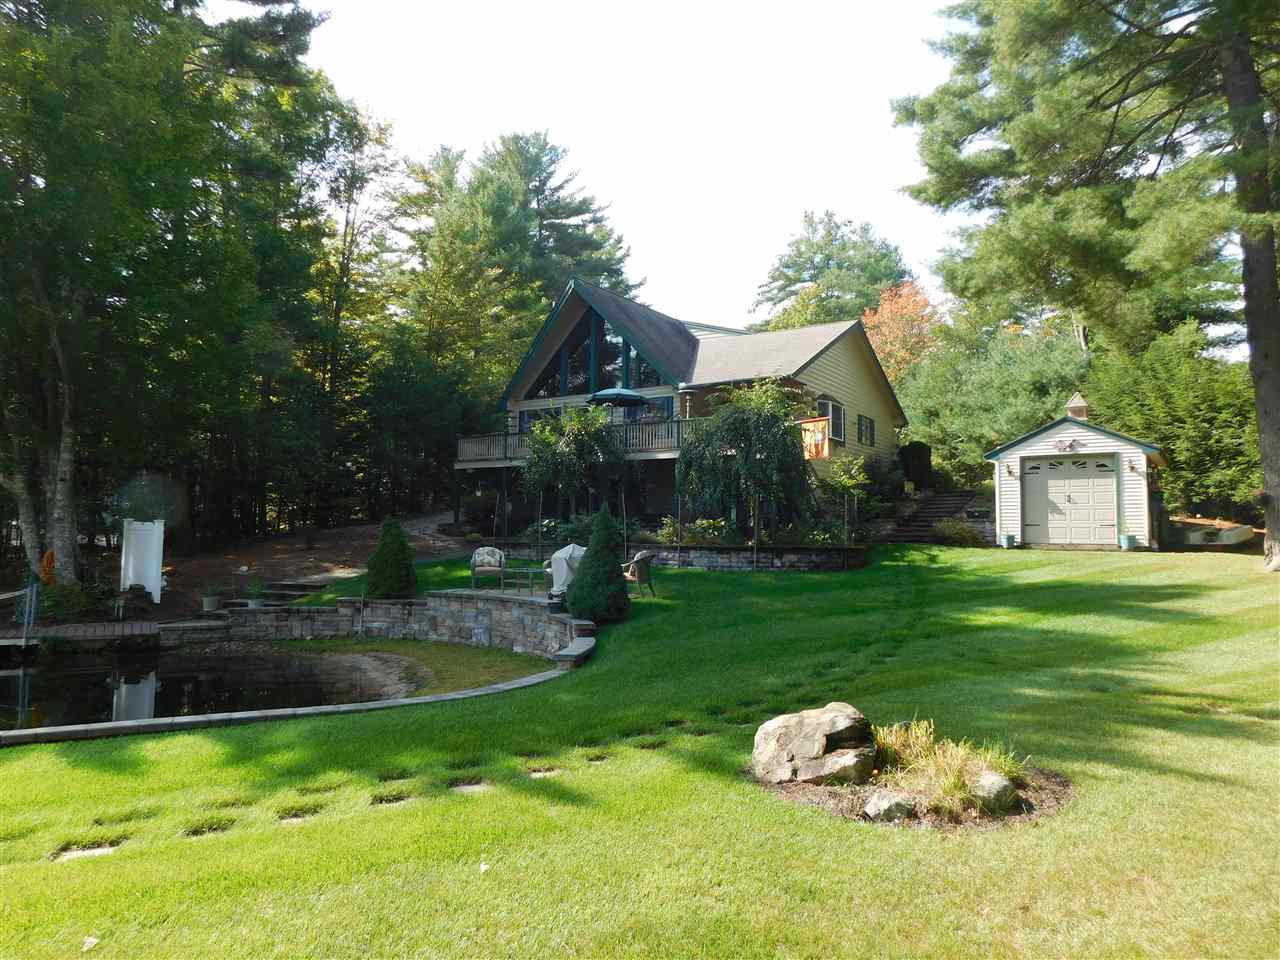 Village of East Wakefield in Town of Wakefield NH Home for sale $$825,000 $471 per sq.ft.